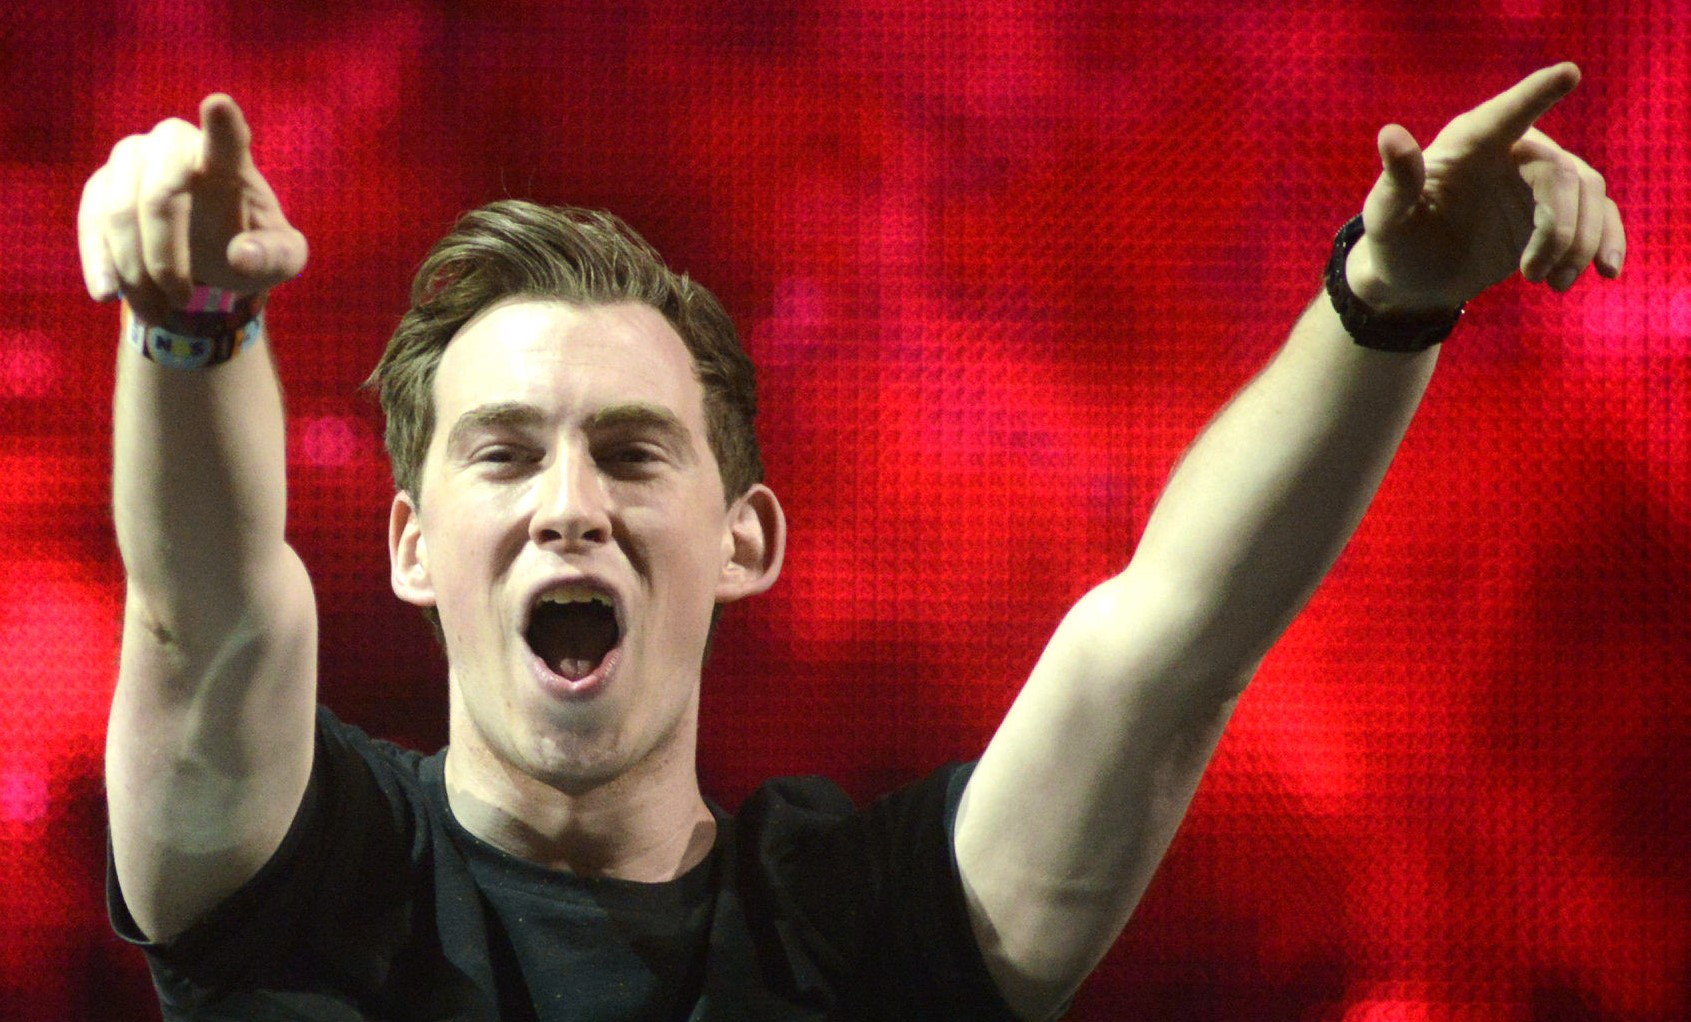 Hardwell performs during the Ultra Music Festival at Bayfront Park Amphitheater on March 30, 2014 in Miami, Florida. //// - FEATURES - TIM MOSENFELDER / GETTY IMAGES ** OUTS - ELSENT and FPG - OUTS * NM, PH, VA if sourced by CT, LA or MoD **